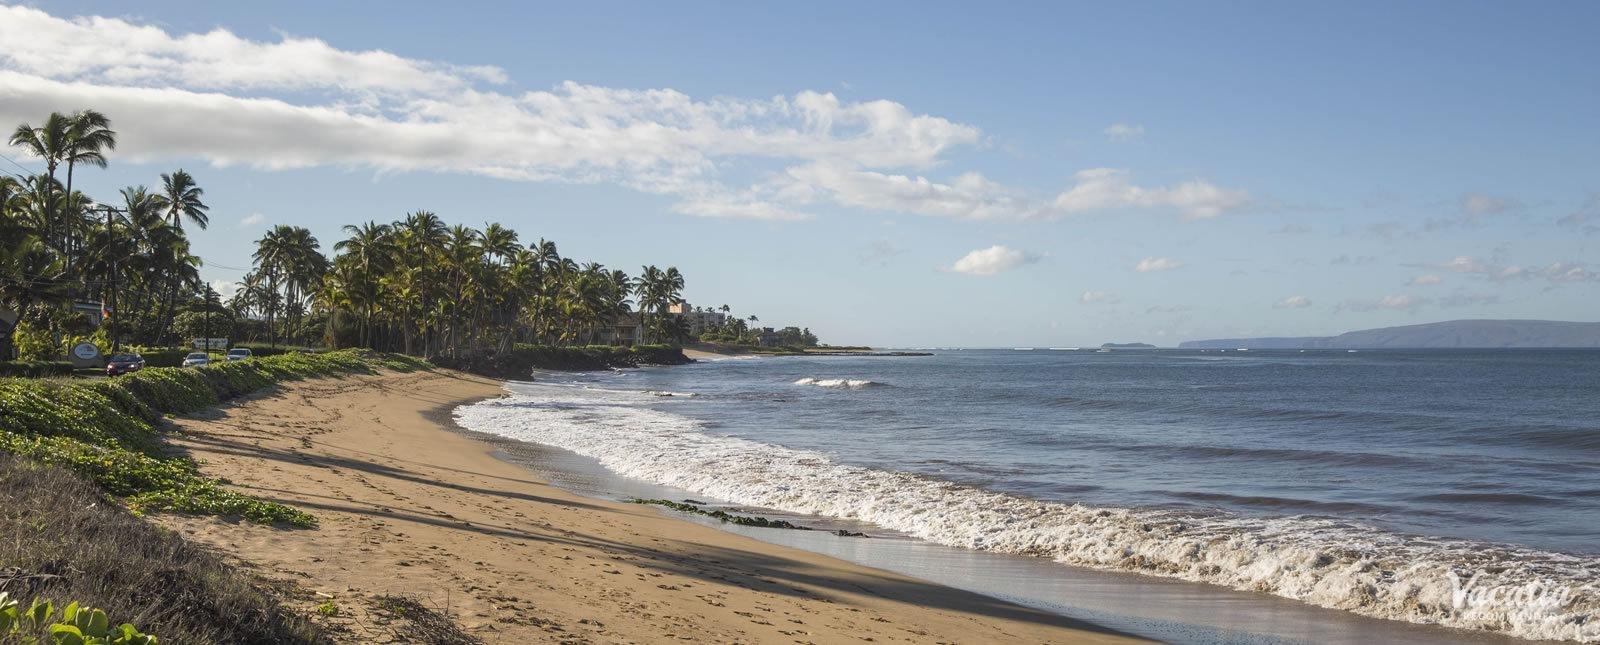 Maui Beach Vacation Club near kihei beaches